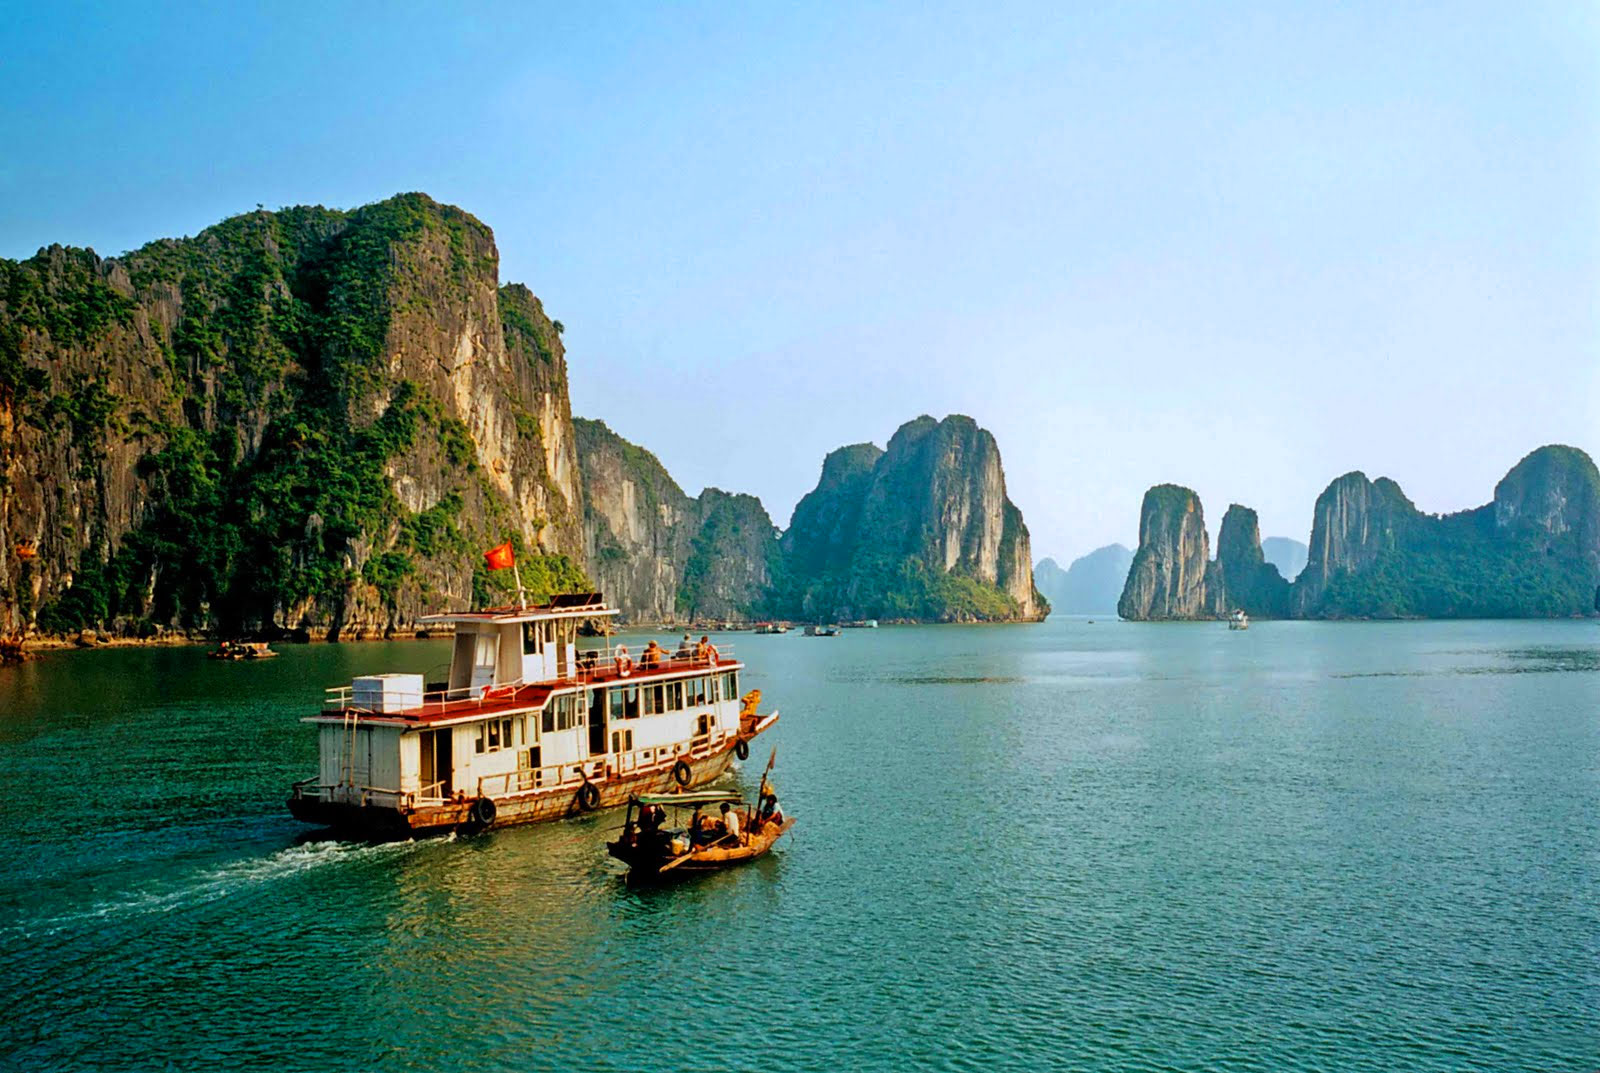 Holiday in vietnam